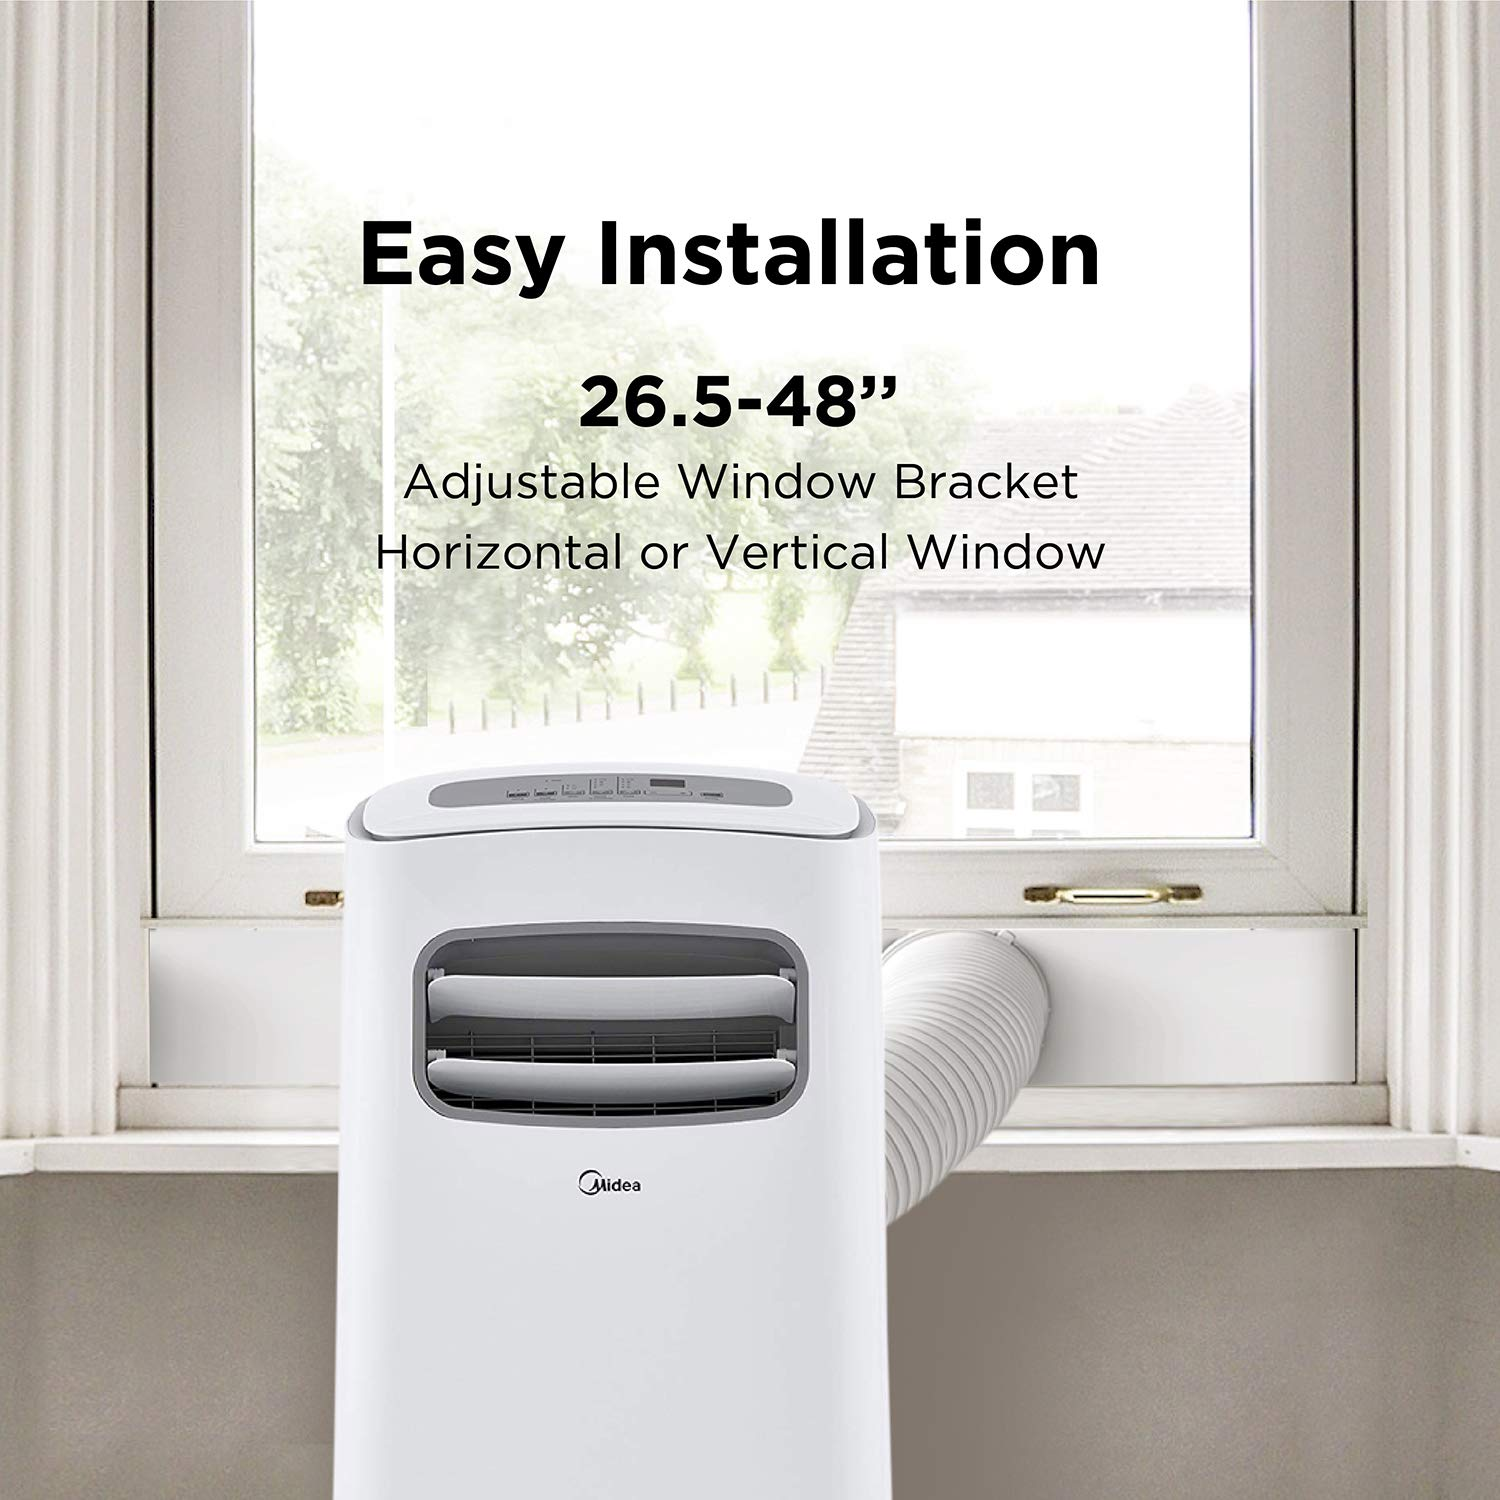 White ft for Rooms up to 100 Sq MIDEA MAP08S1BWT Portable Air Conditioner WiFi 8,000 BTU Alexa Enabled Cooling, Dehumidifier and Fan with Remote Control